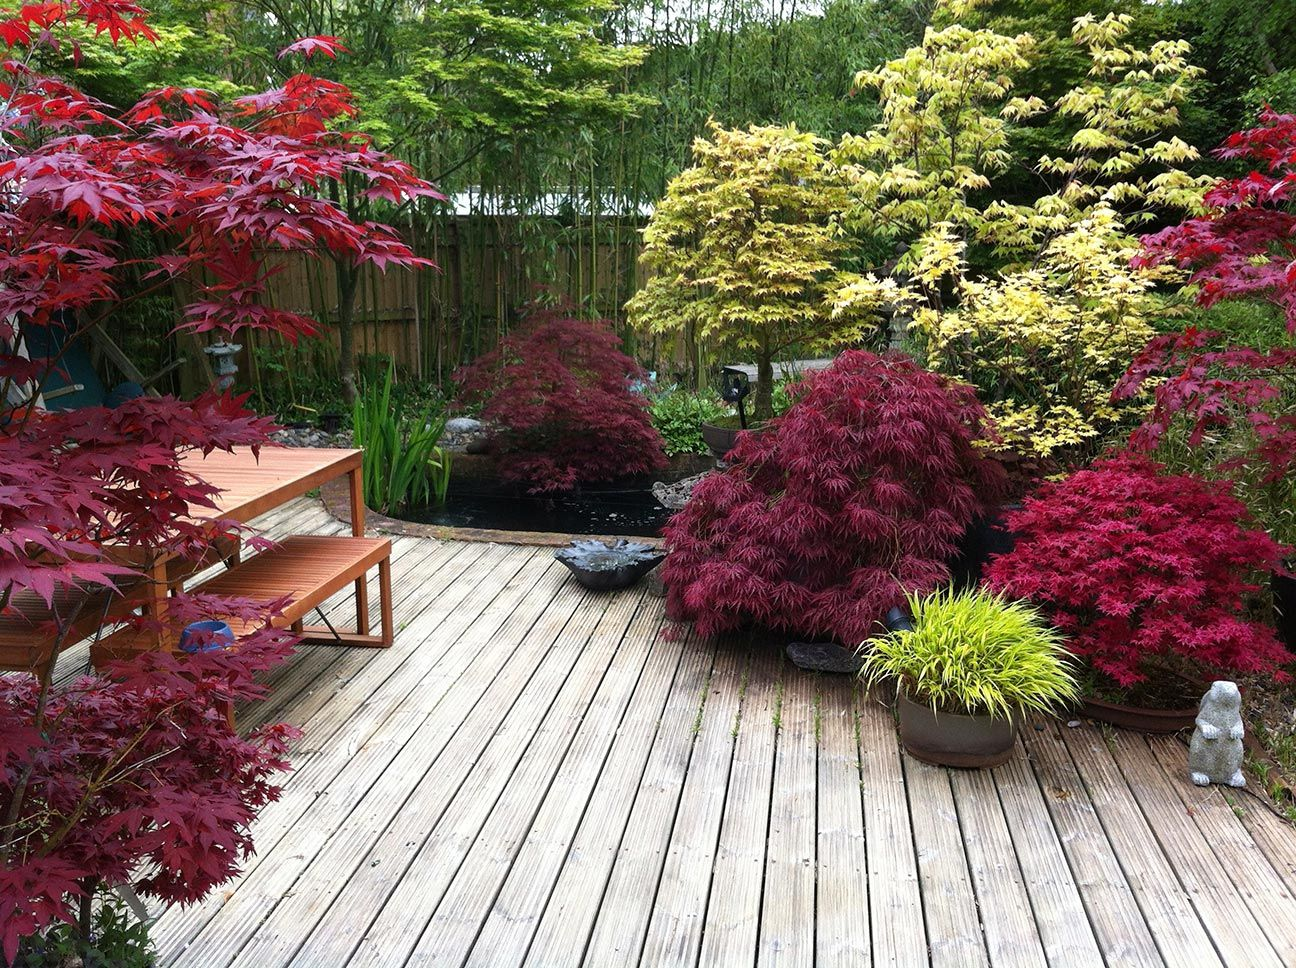 Japanese Maples So Many Awesome Colorful Varieties To Choose From Japanese Garden Designjapanese Garden Backyardsmall